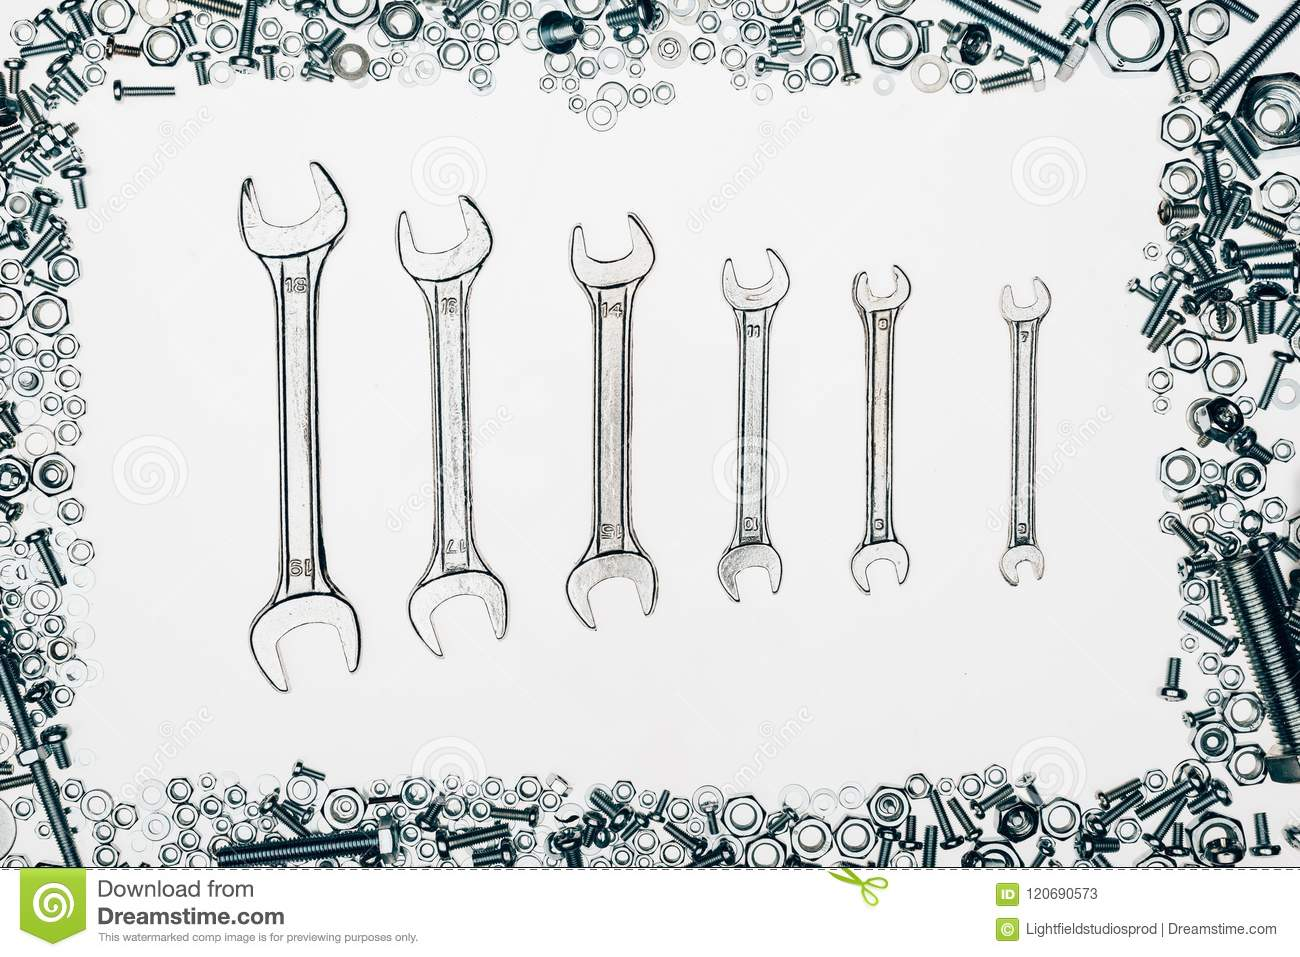 Top View Of Metal Wrenches, Various Bolts And Framing Nails Stock ...